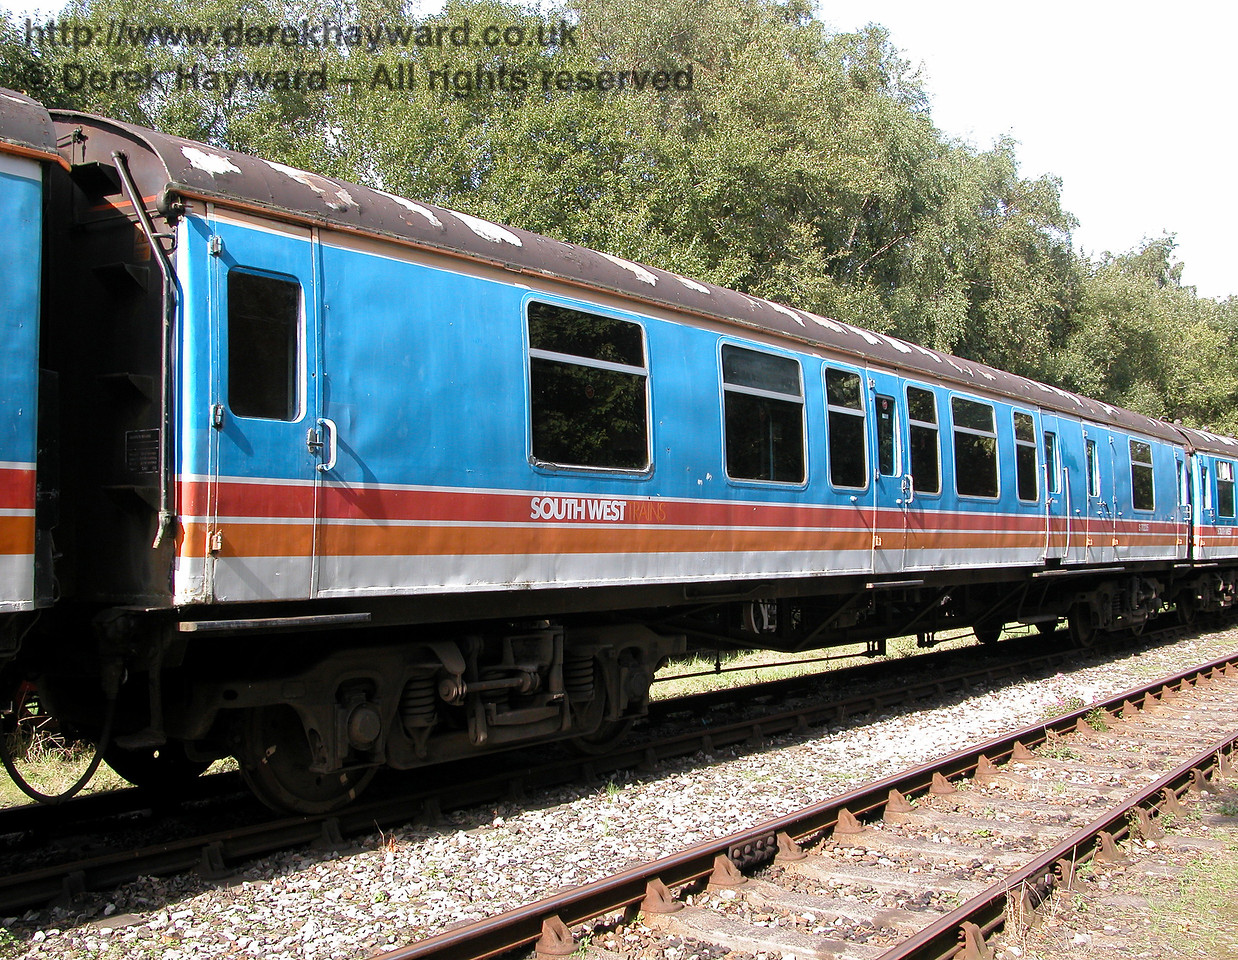 An earlier picture of coach S70235 from BR 4-CEP unit 7105 at Shepherdswell in 2006.  At the time all four coaches of the unit had signs of deterioration on the roof. 19.09.2006